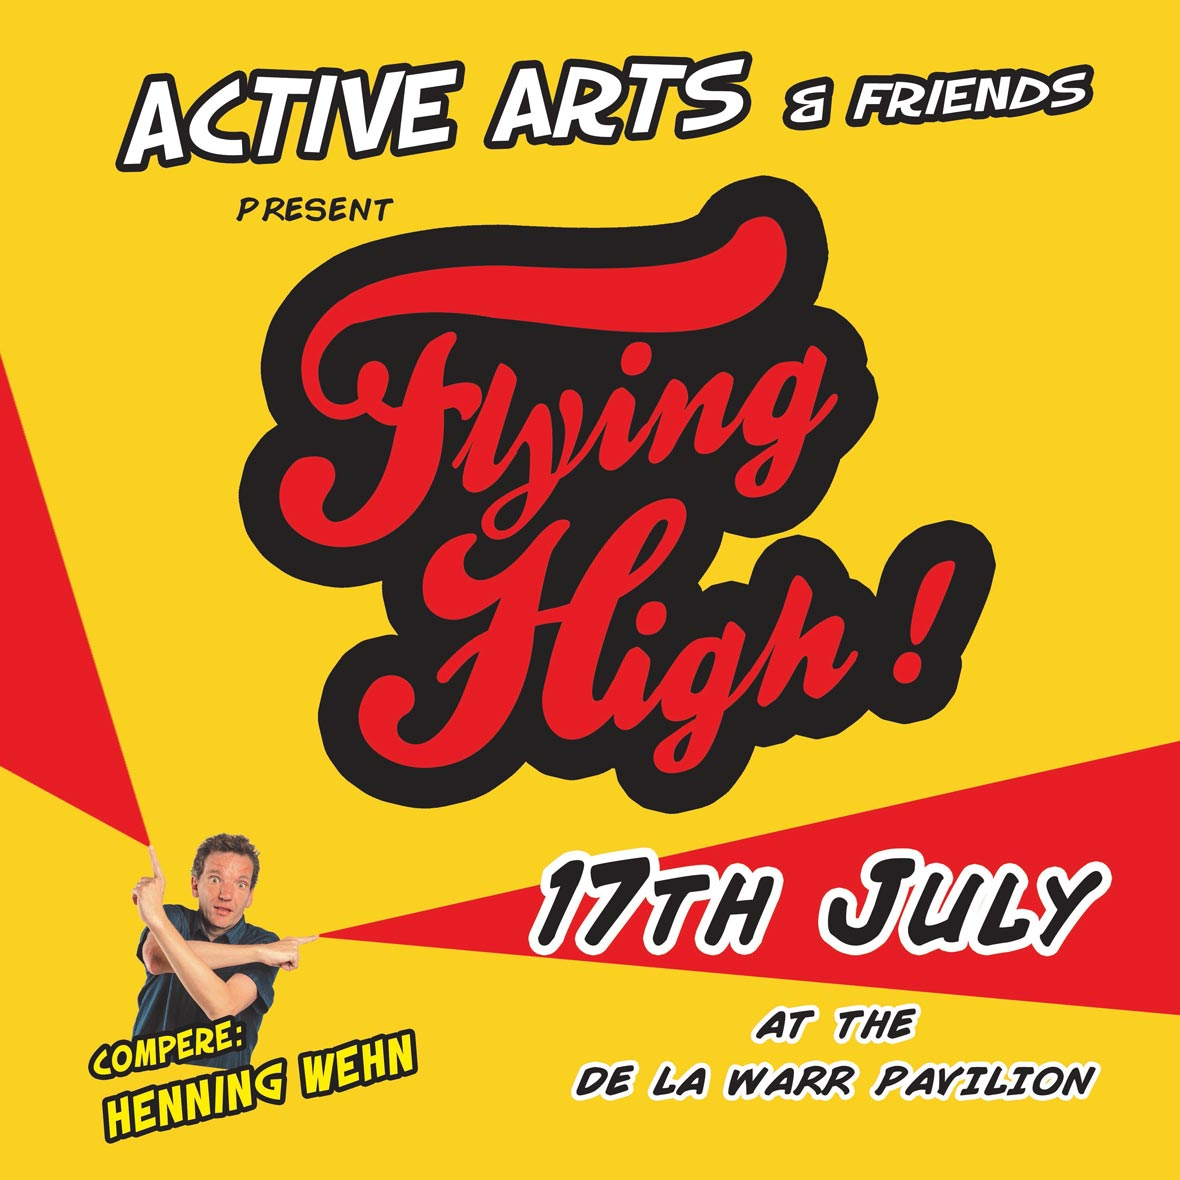 Flying High! Henning Wehn Comedy Performance Musical Theatre Animation Bexhill DLWP